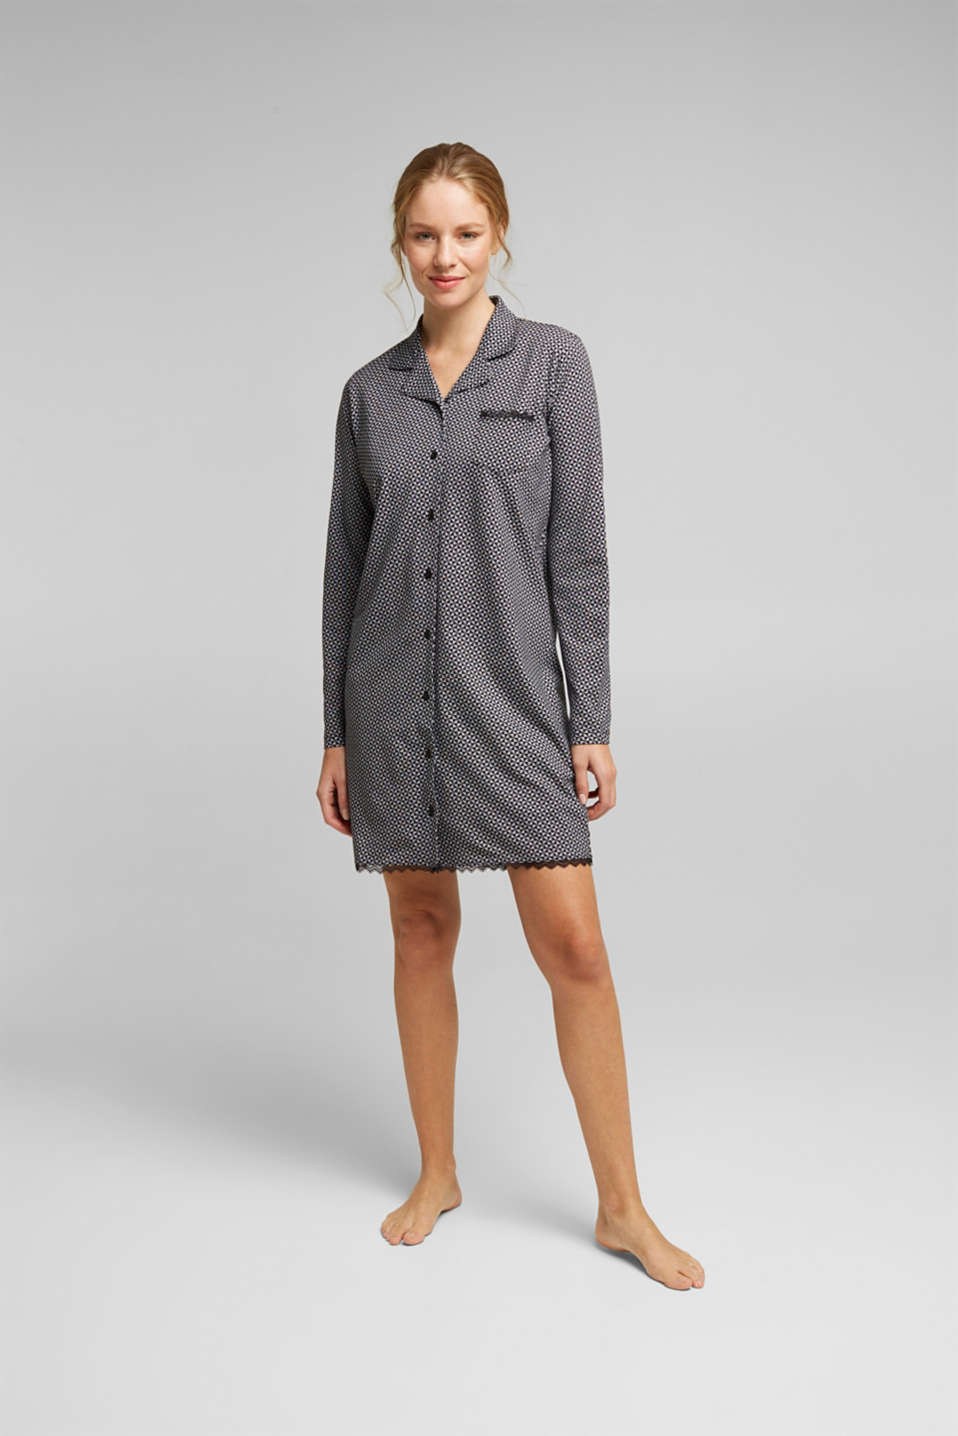 Esprit - Nightshirt made of 100% organic cotton